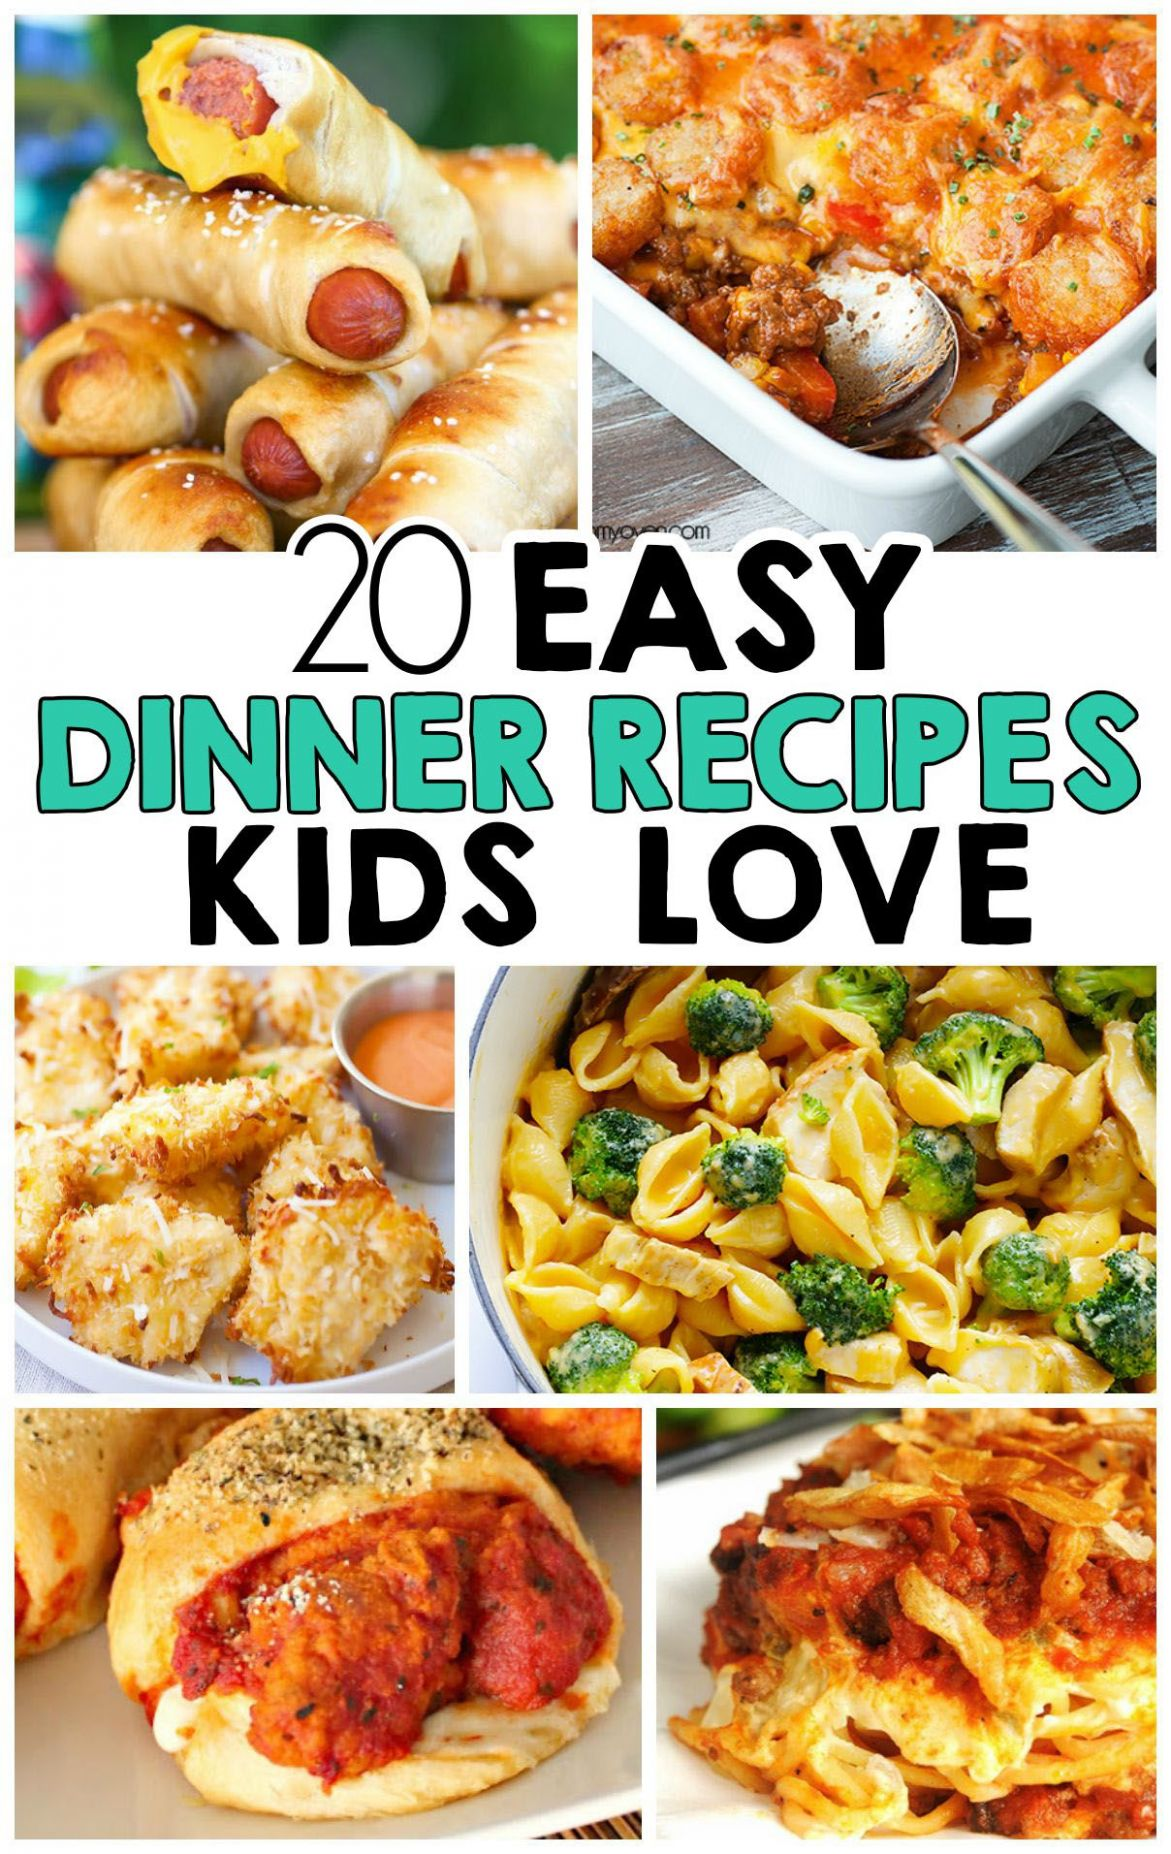 9 Easy Dinner Recipes That Kids Love | Meals kids love, Easy ..